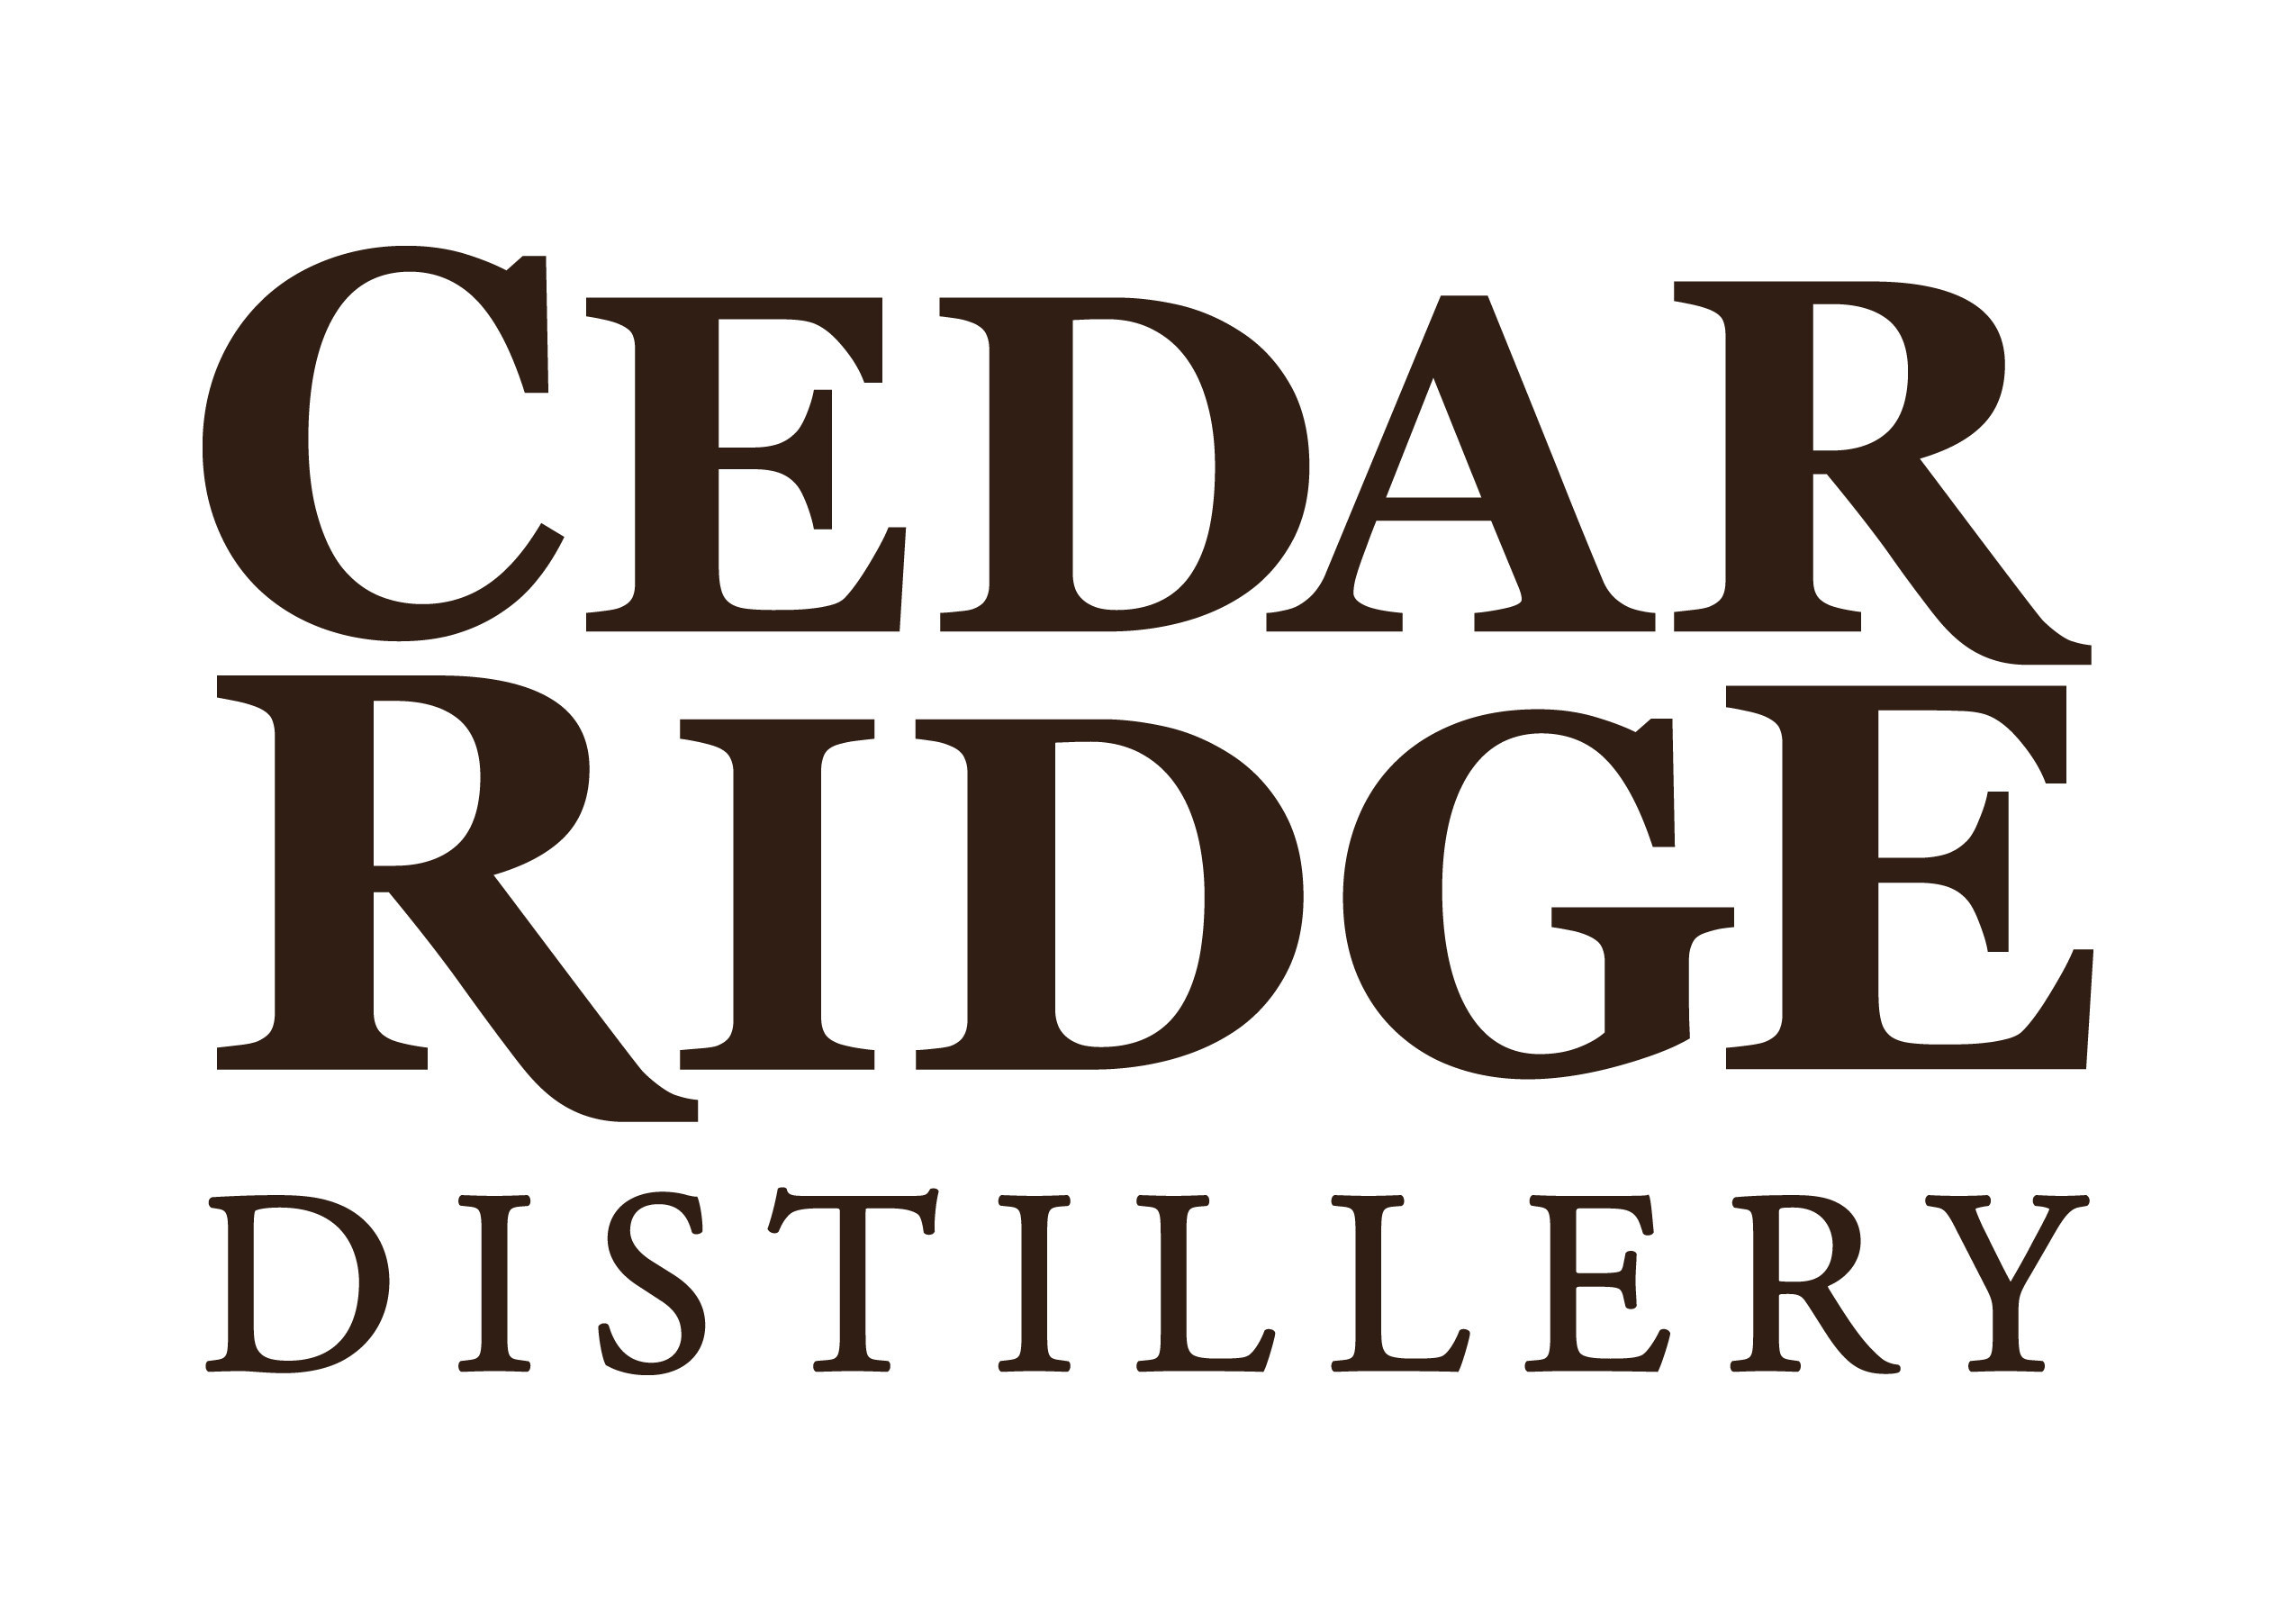 cedar ridge hispanic single men Cedar ridge winery & distillery crafts the finest whiskeys & wines from our iowa-grown ingredients visit the winery or have us host your next event.